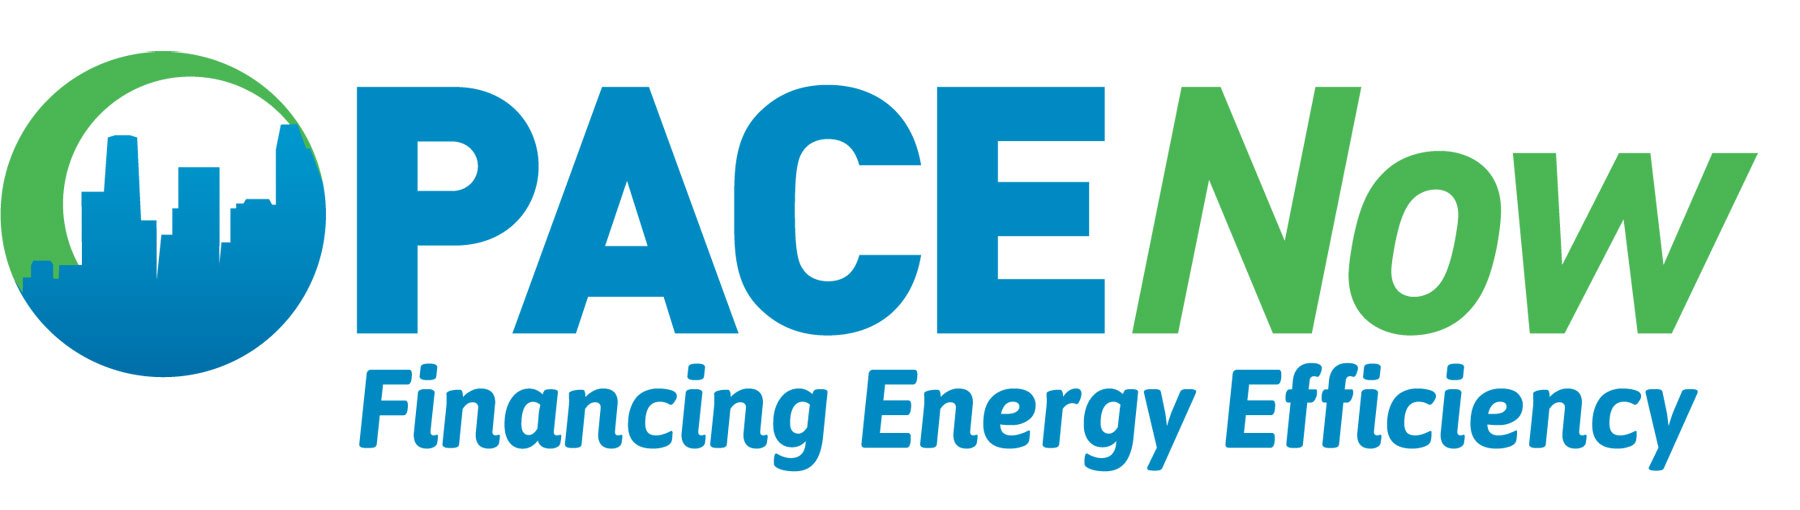 Property Assessed Clean Energy Pace Launches In